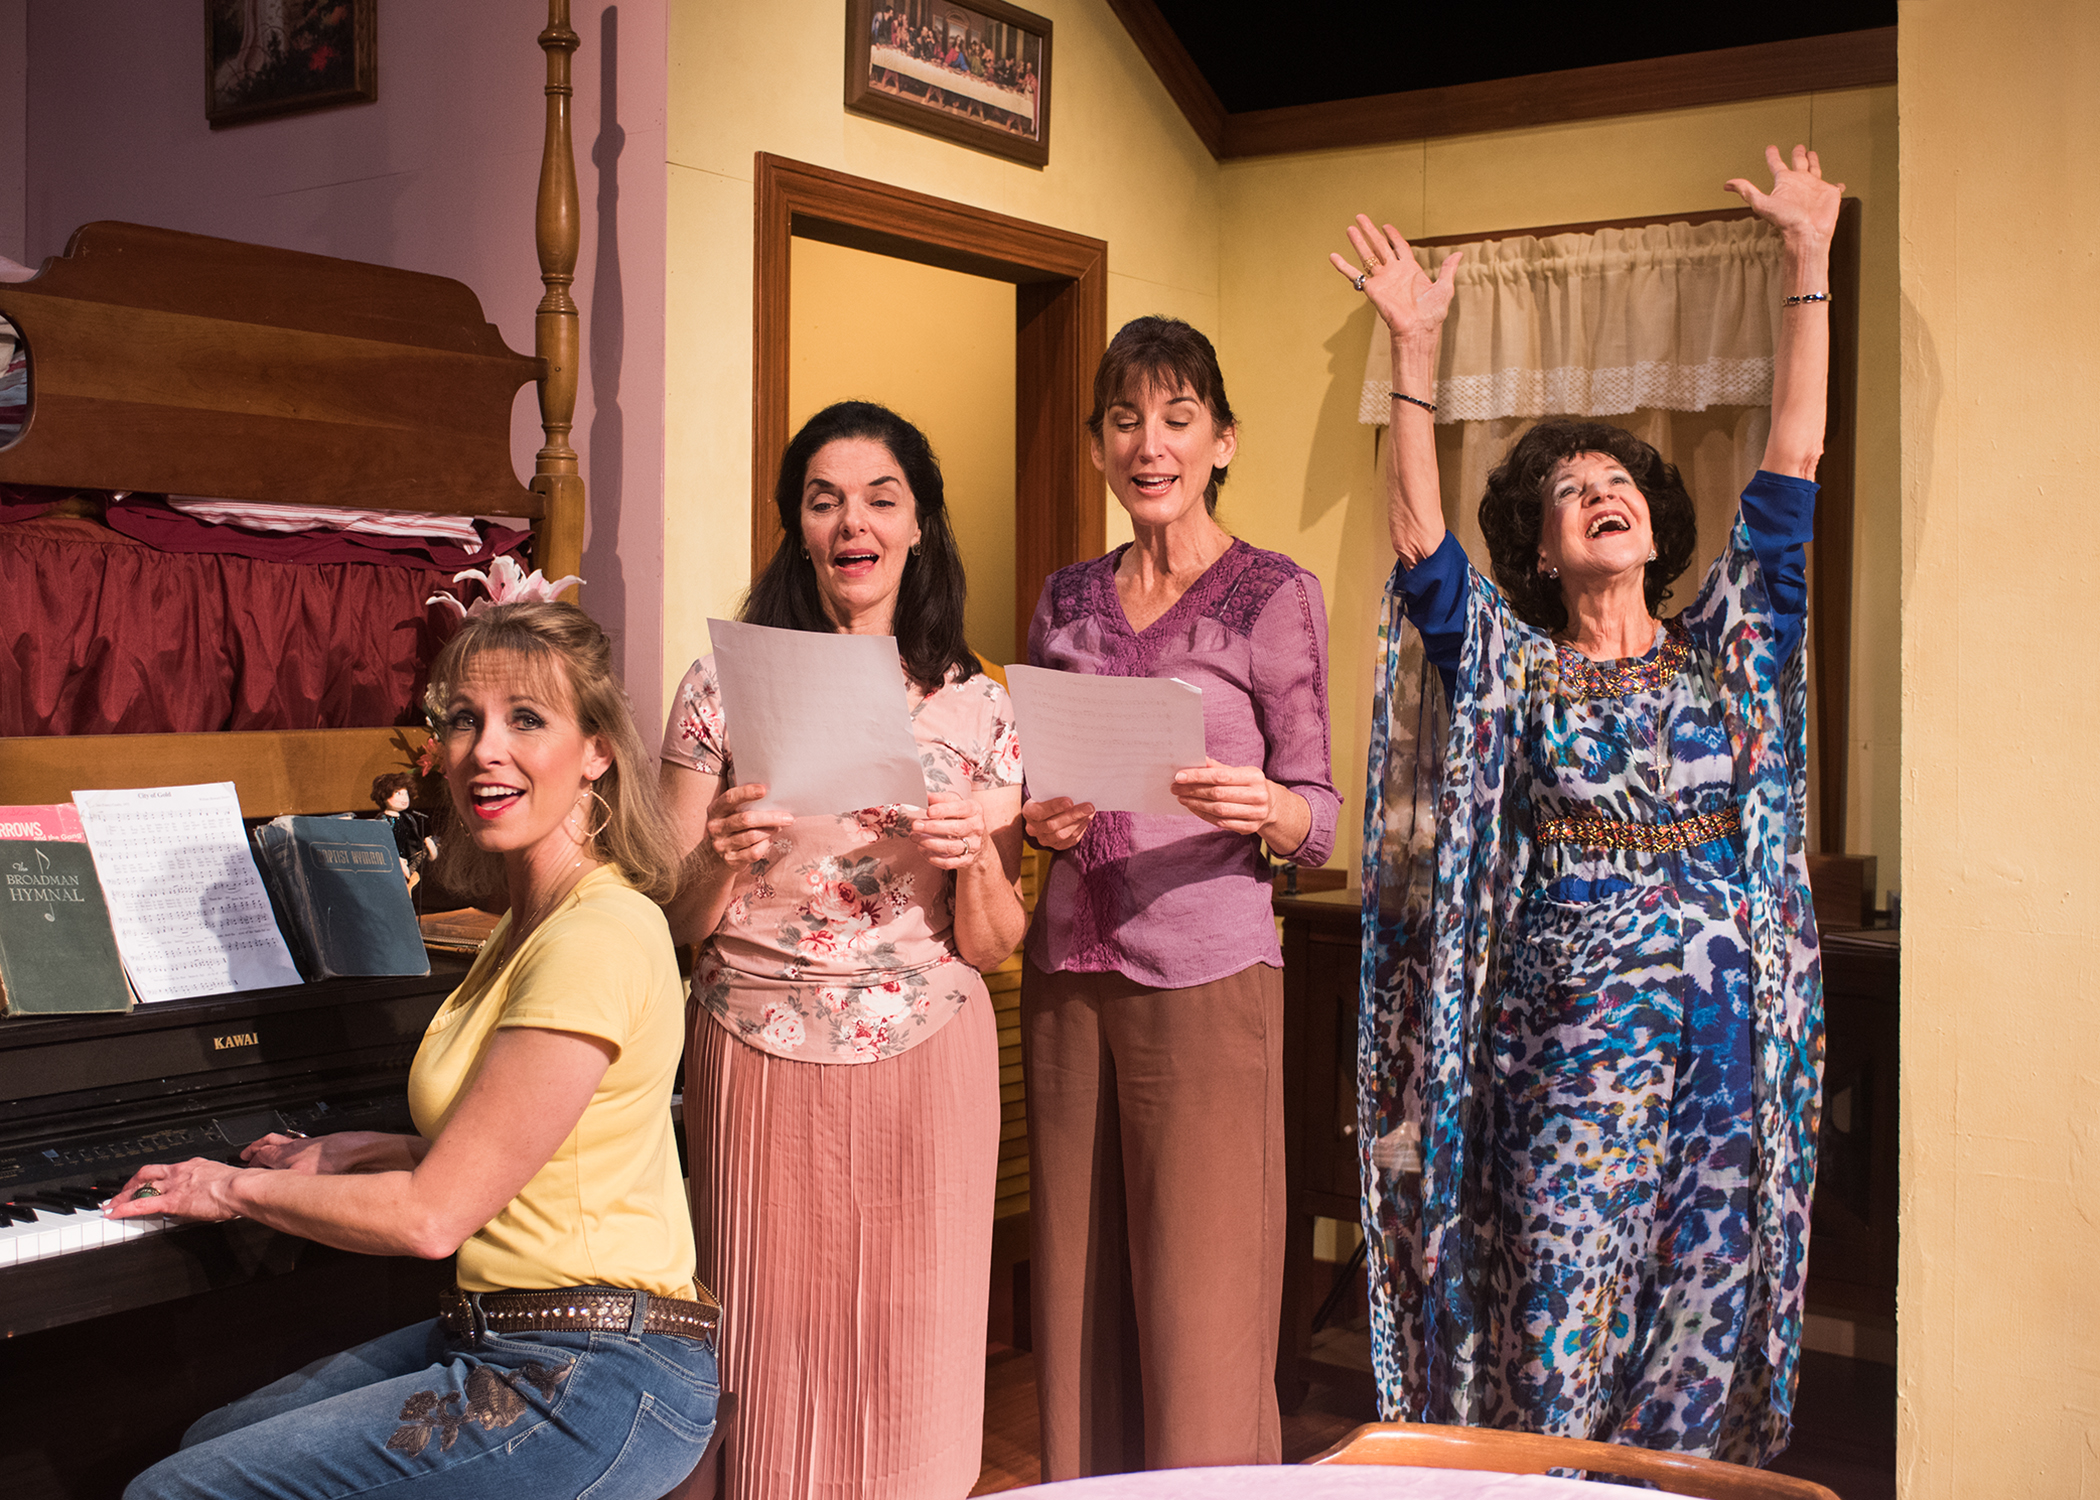 Pictured L to R: The Blaylock sisters (Amy Meyers,Cheryl Smith, Alison Whismore)rehearse with their mother Ditty (Christine Macomber). Photo by Lois Tema.